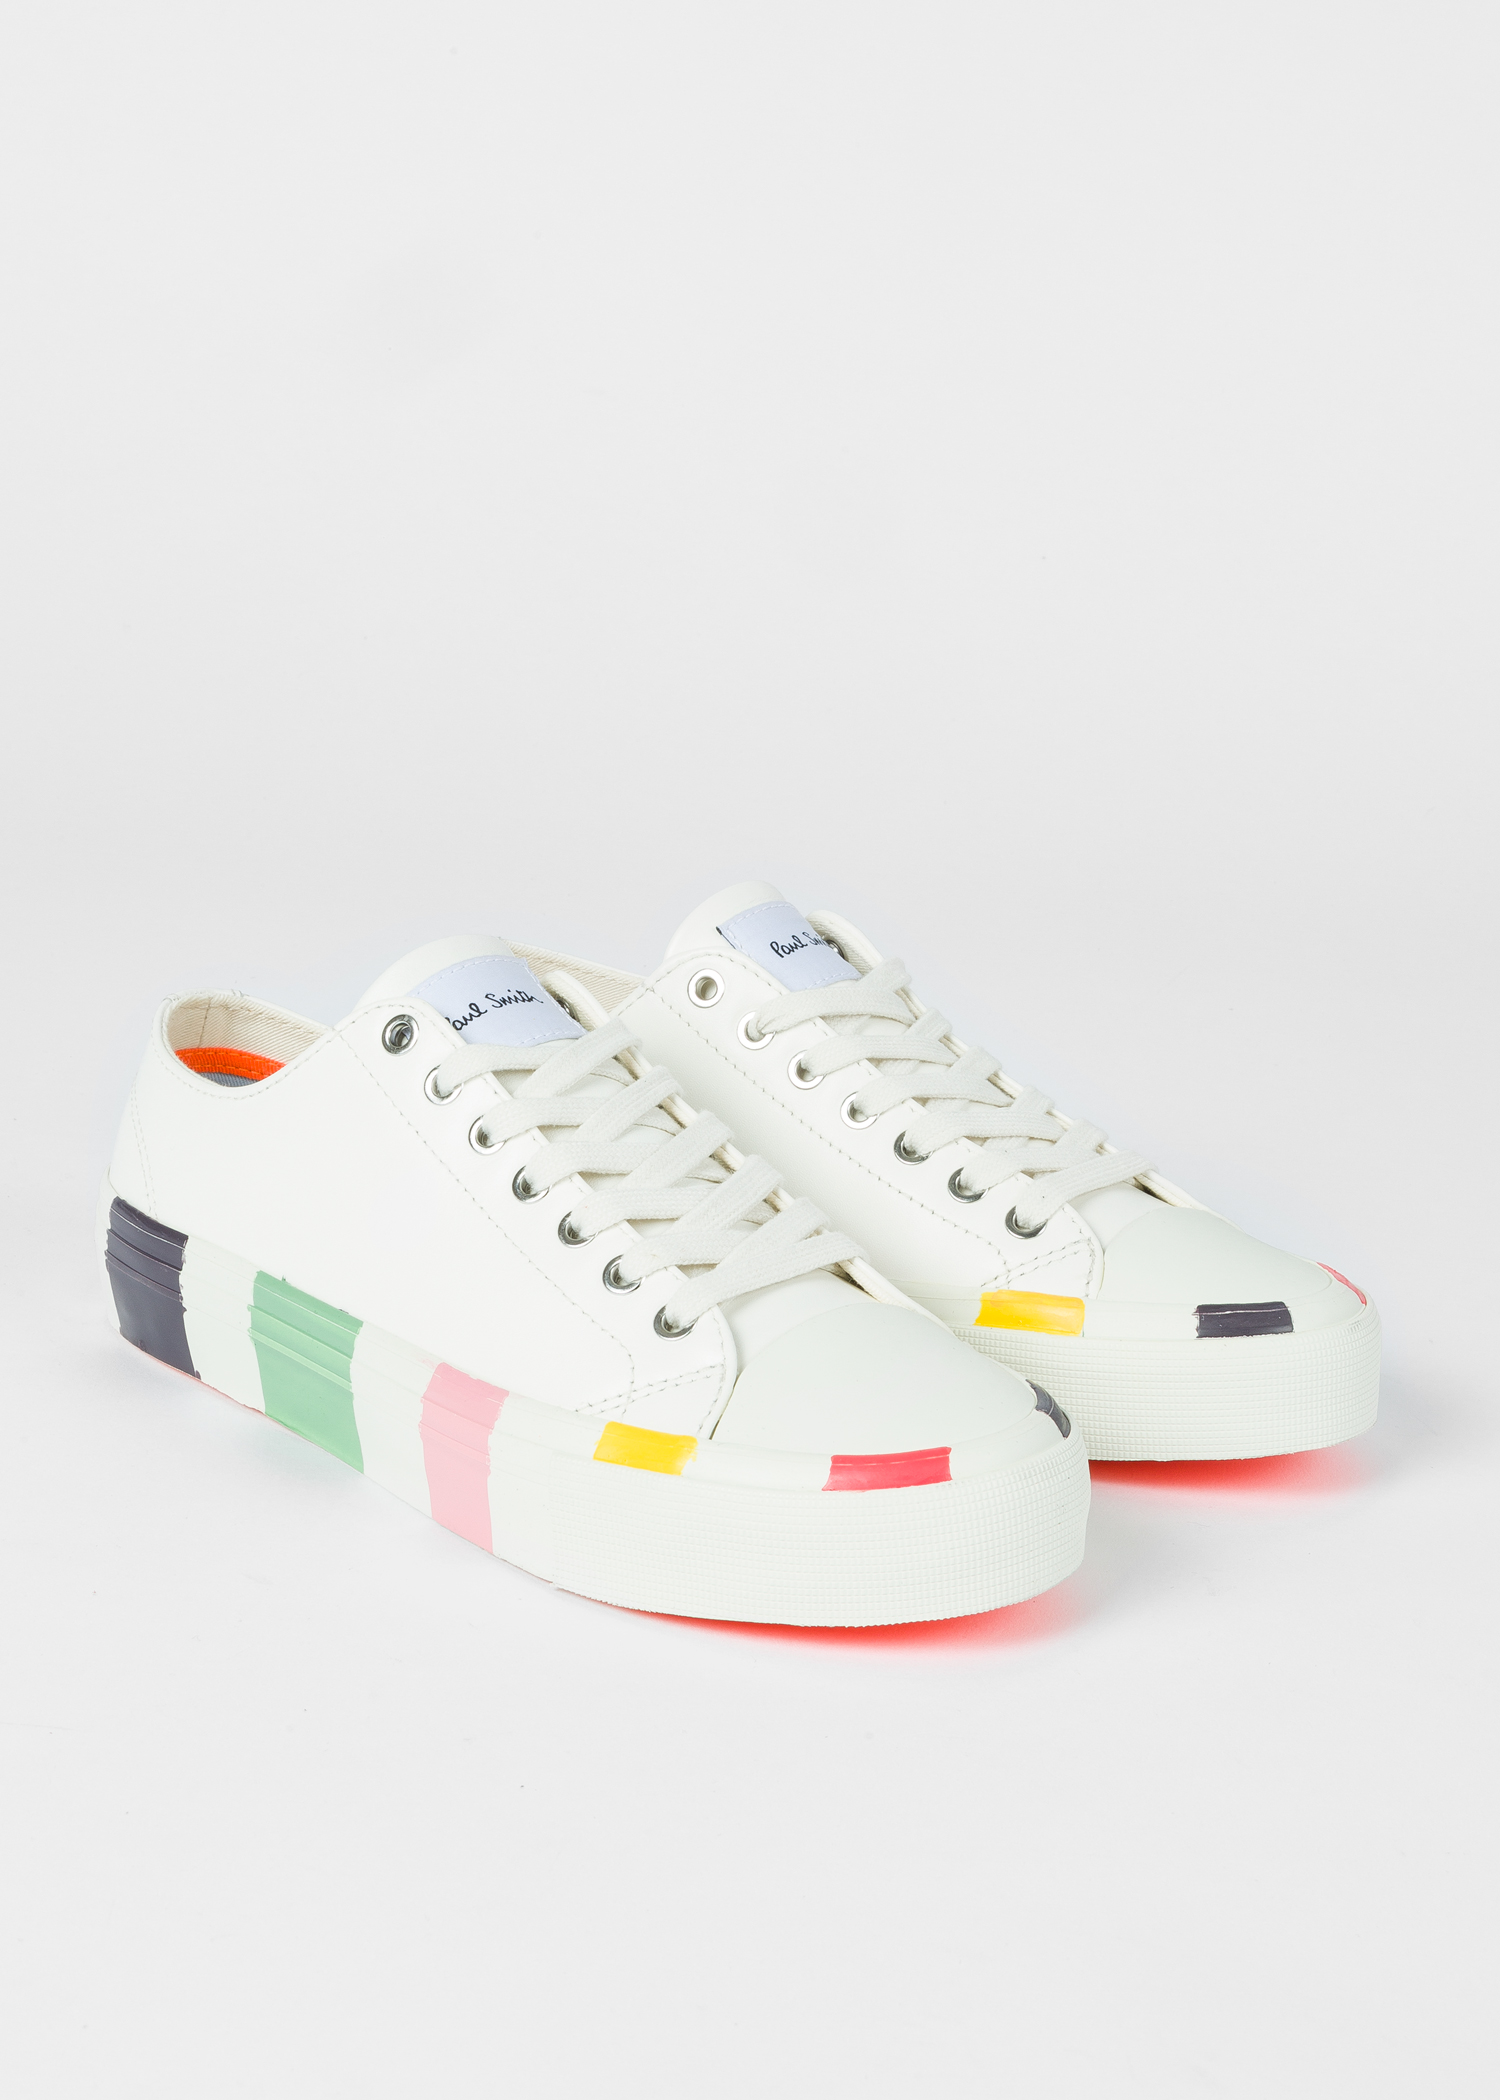 6f5342003d08 Pair view - Women s White Leather  Nolan  Sneakers With Multi-Coloured  Soles Paul